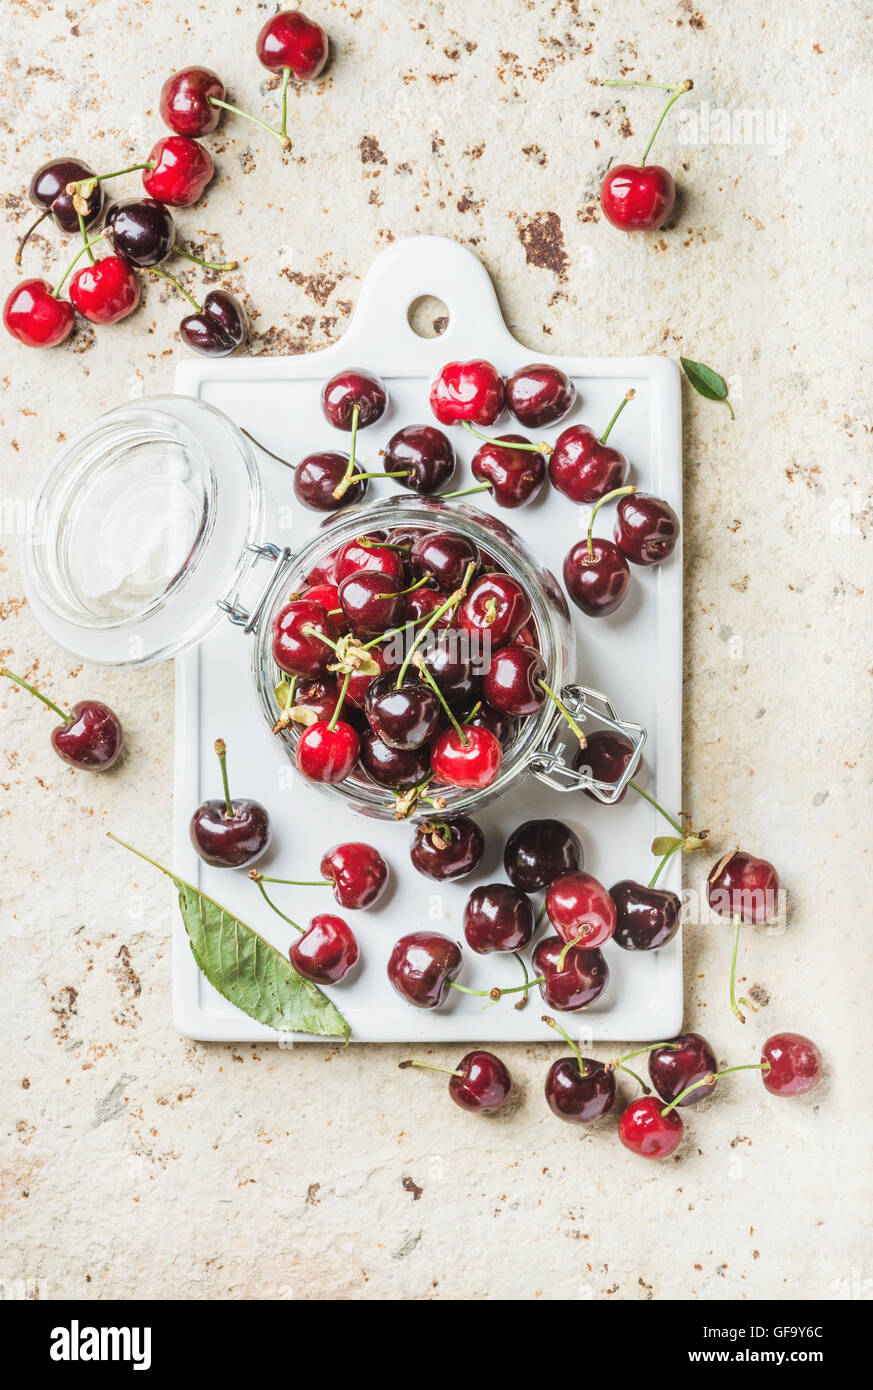 Sweet cherry in glass jar on white board over concrete background - Stock Image